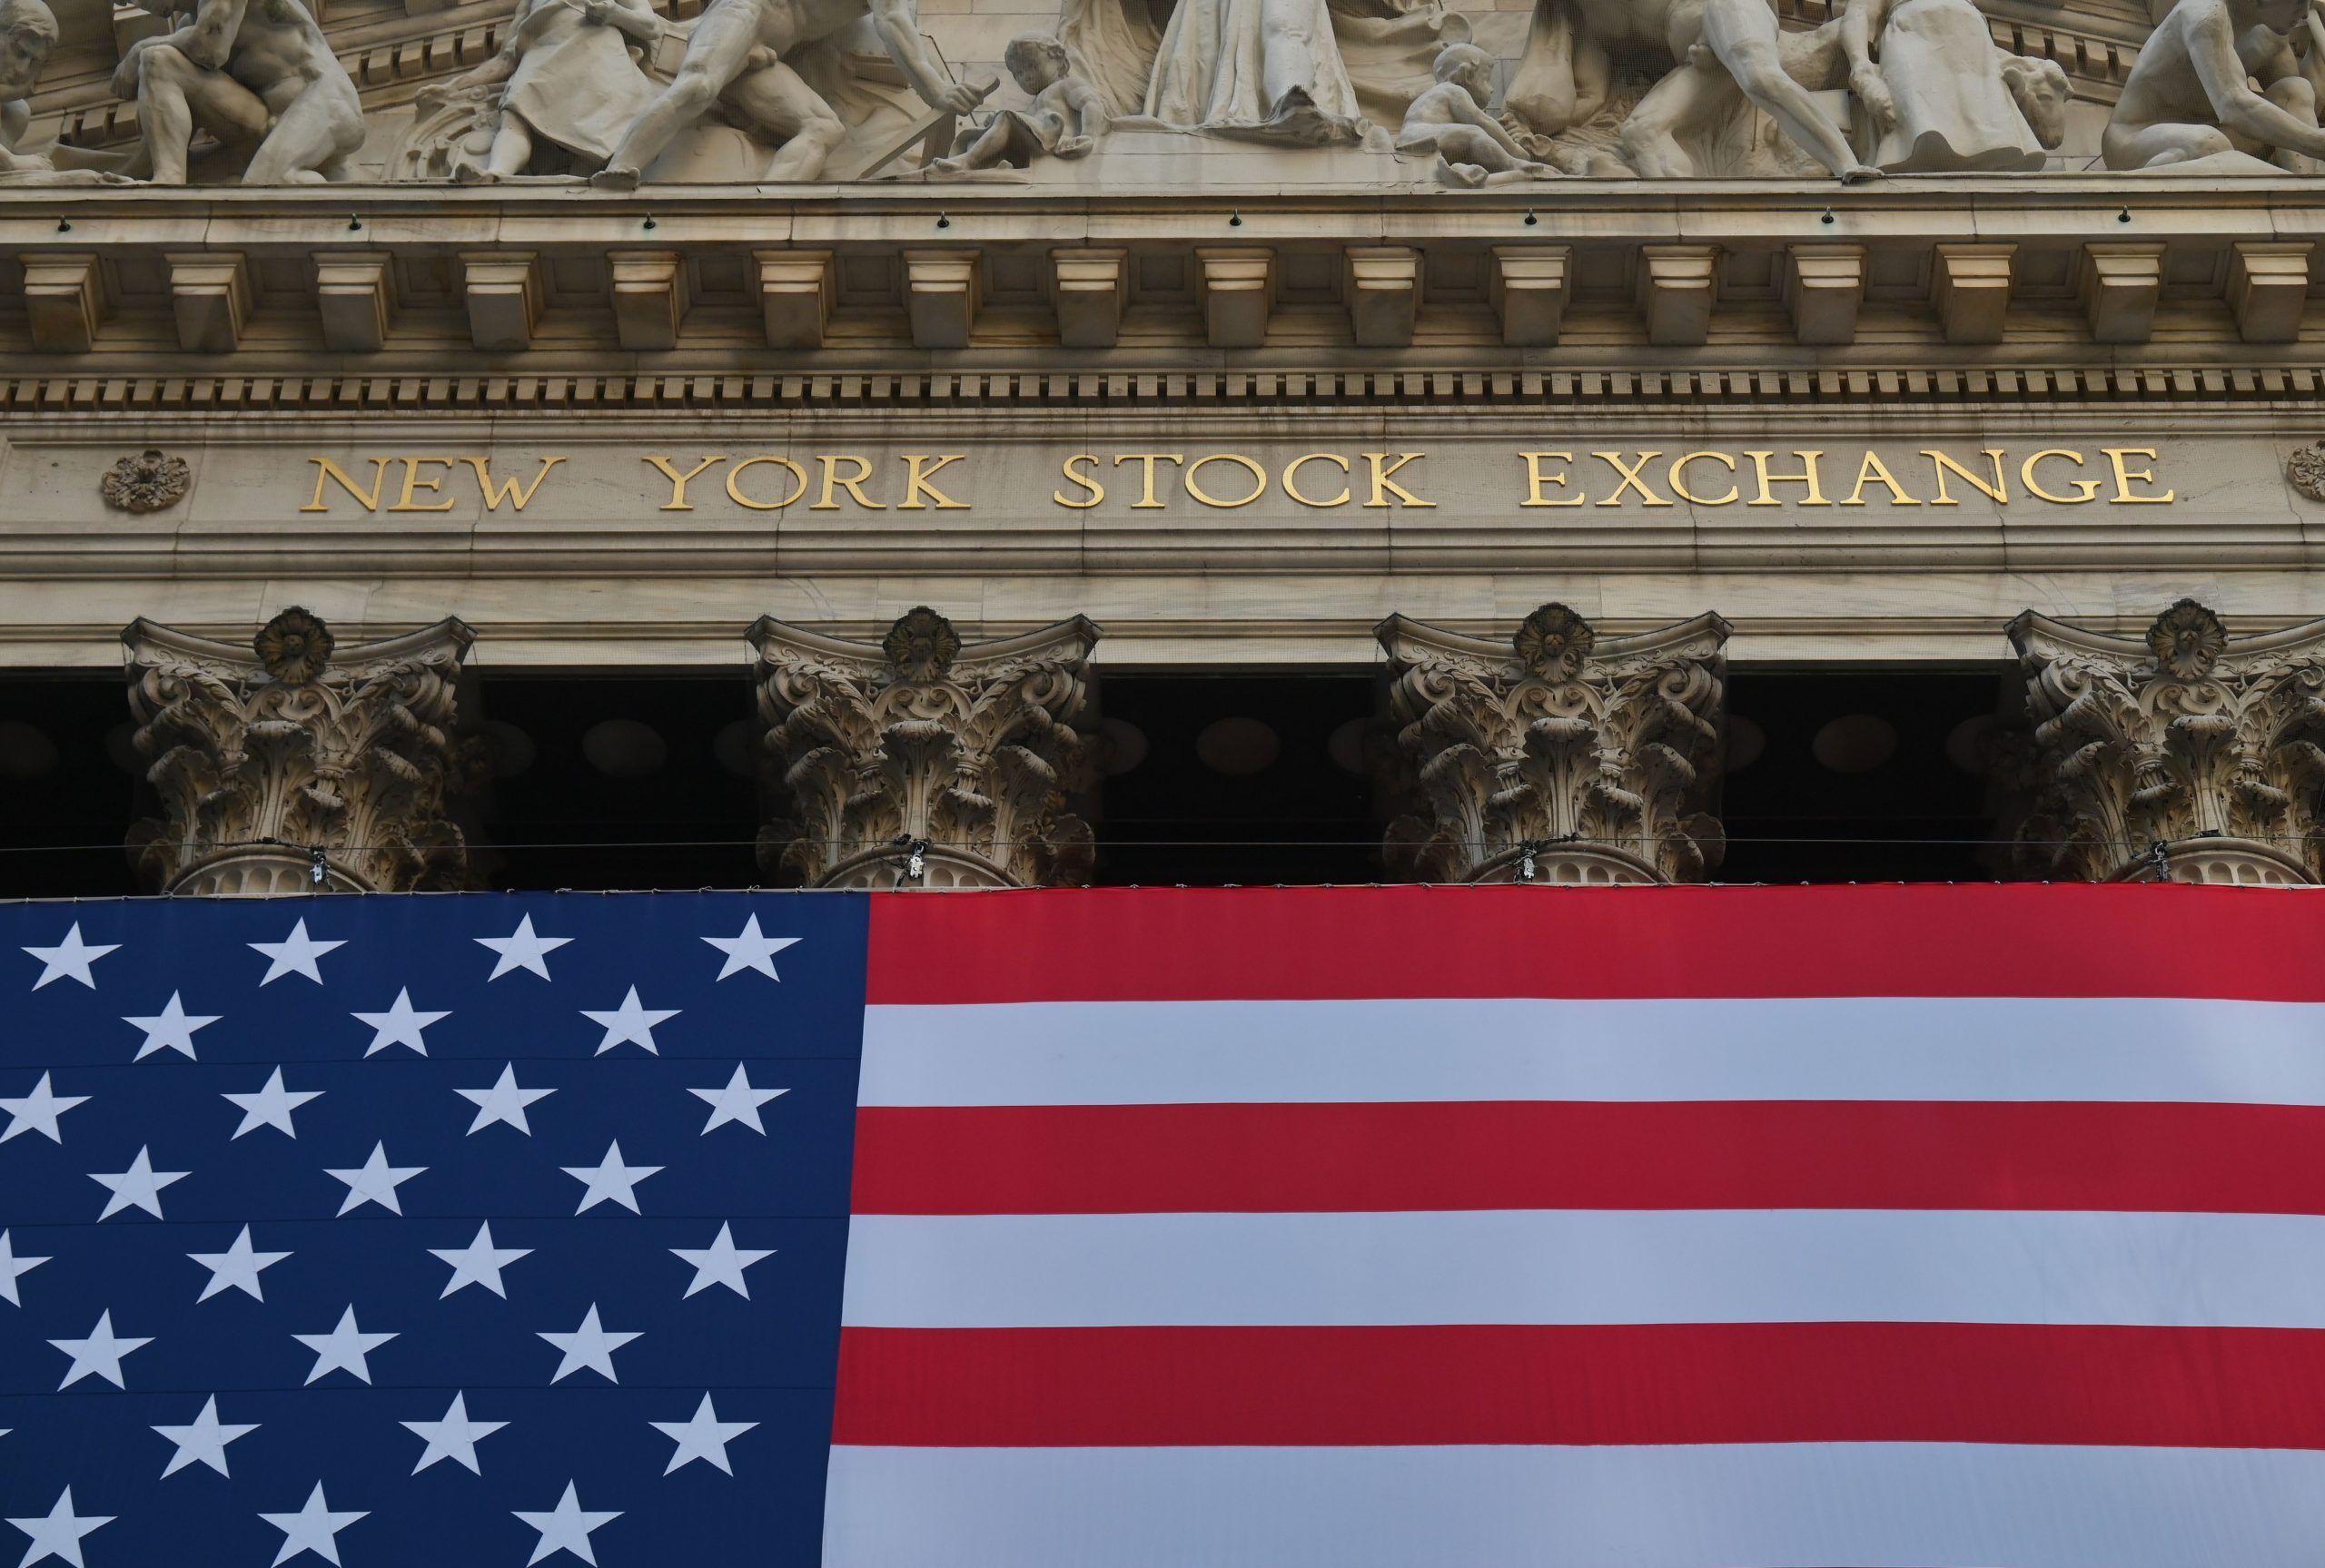 View of the New York Stock Exchange on Wall Street on Nov. 16 in New York City. (Angela Weiss/AFP via Getty Images)